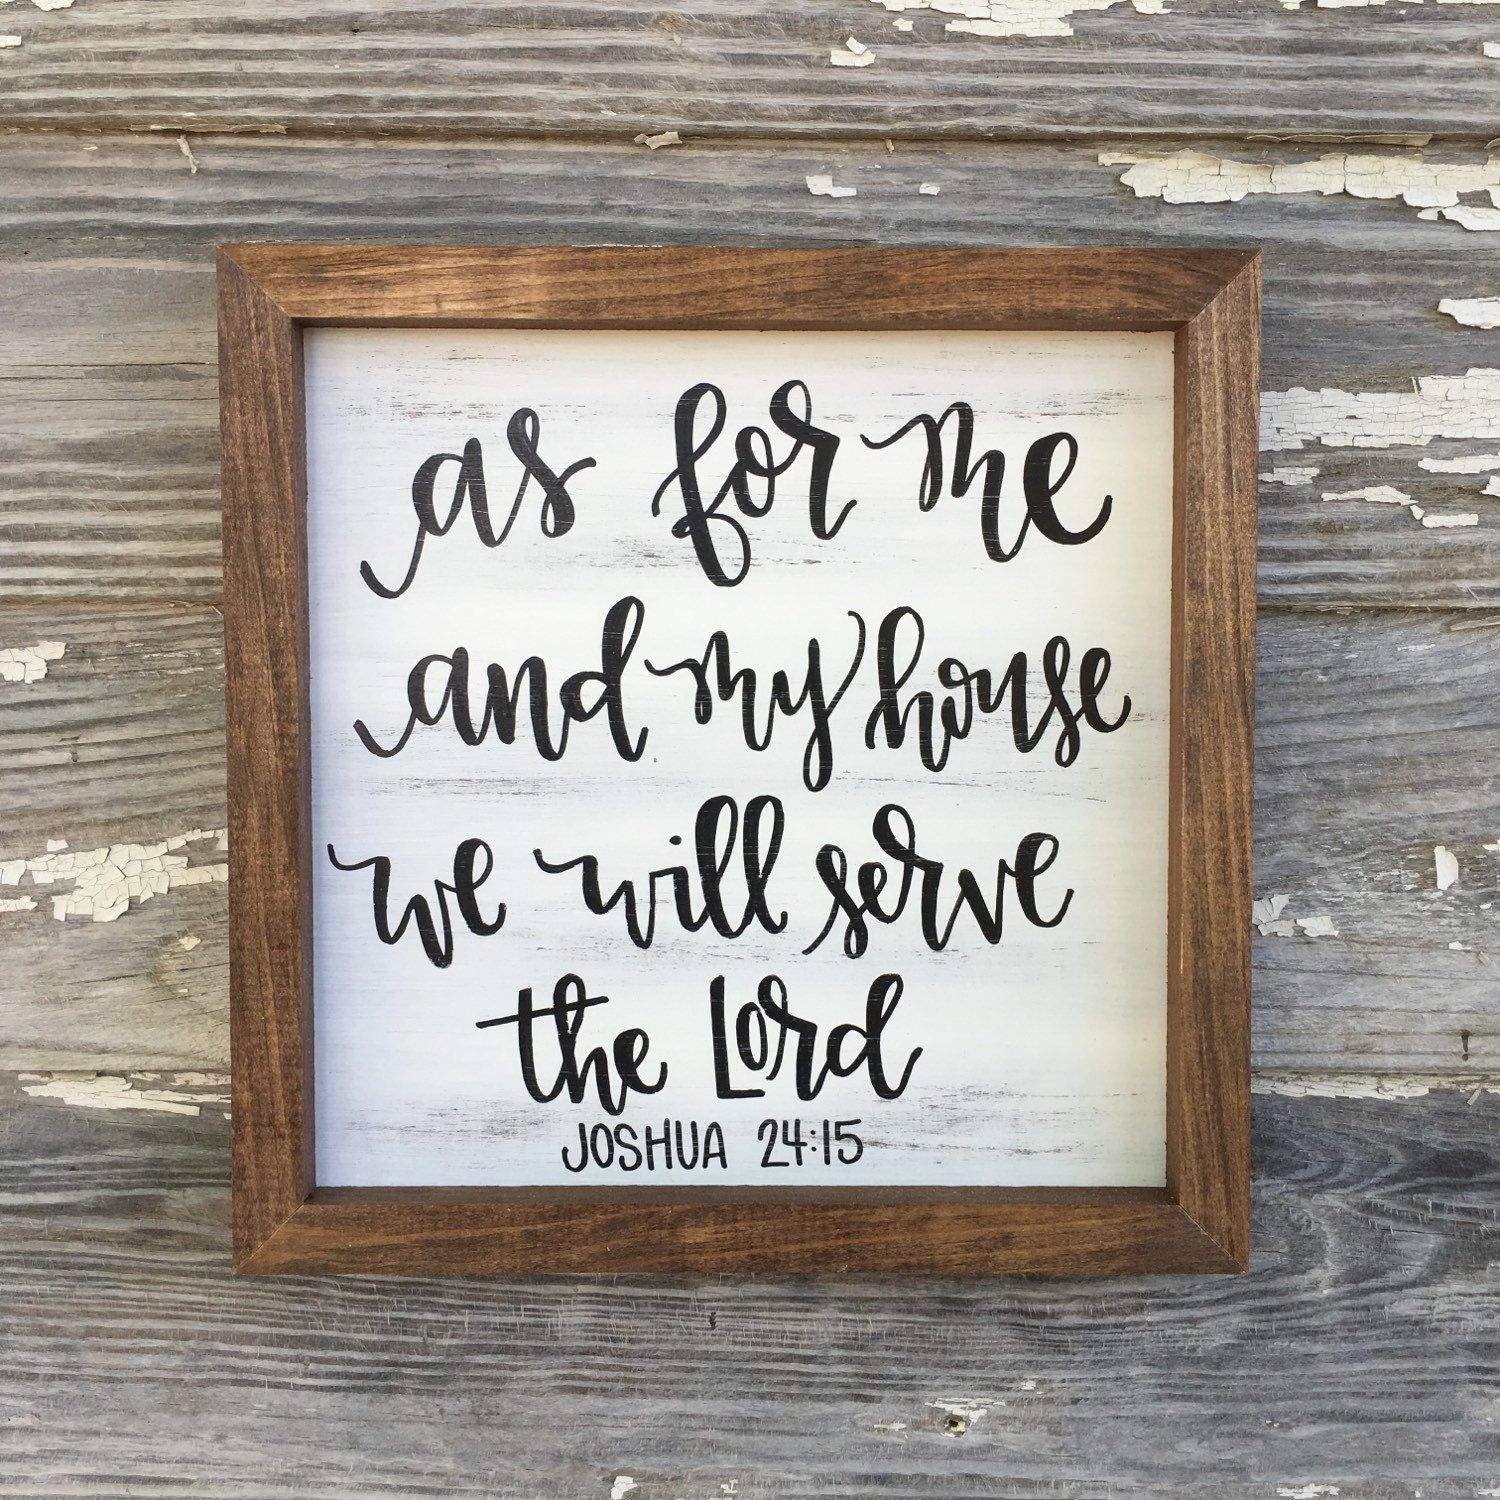 As for me and my house we will serve the Lord -Joshua 24:15  :::::::::::::::::::::::::::::::::::::::::::::::::::::::::::::  SIGN SIZE: 11x11inches  COLOR: Distressed white LETTERING: Distressed black  FRAME: Special Walnut stain SHIPS IN: 1-3 days  :::::::::::::::::::::::::::::::::::::::::::::::::::::::::::::  This sign is hand lettered and hand painted. No vinyl or stencils are used in our process. You can ensure you are receiving a unique piece. Sign comes with hanging hardware installed…